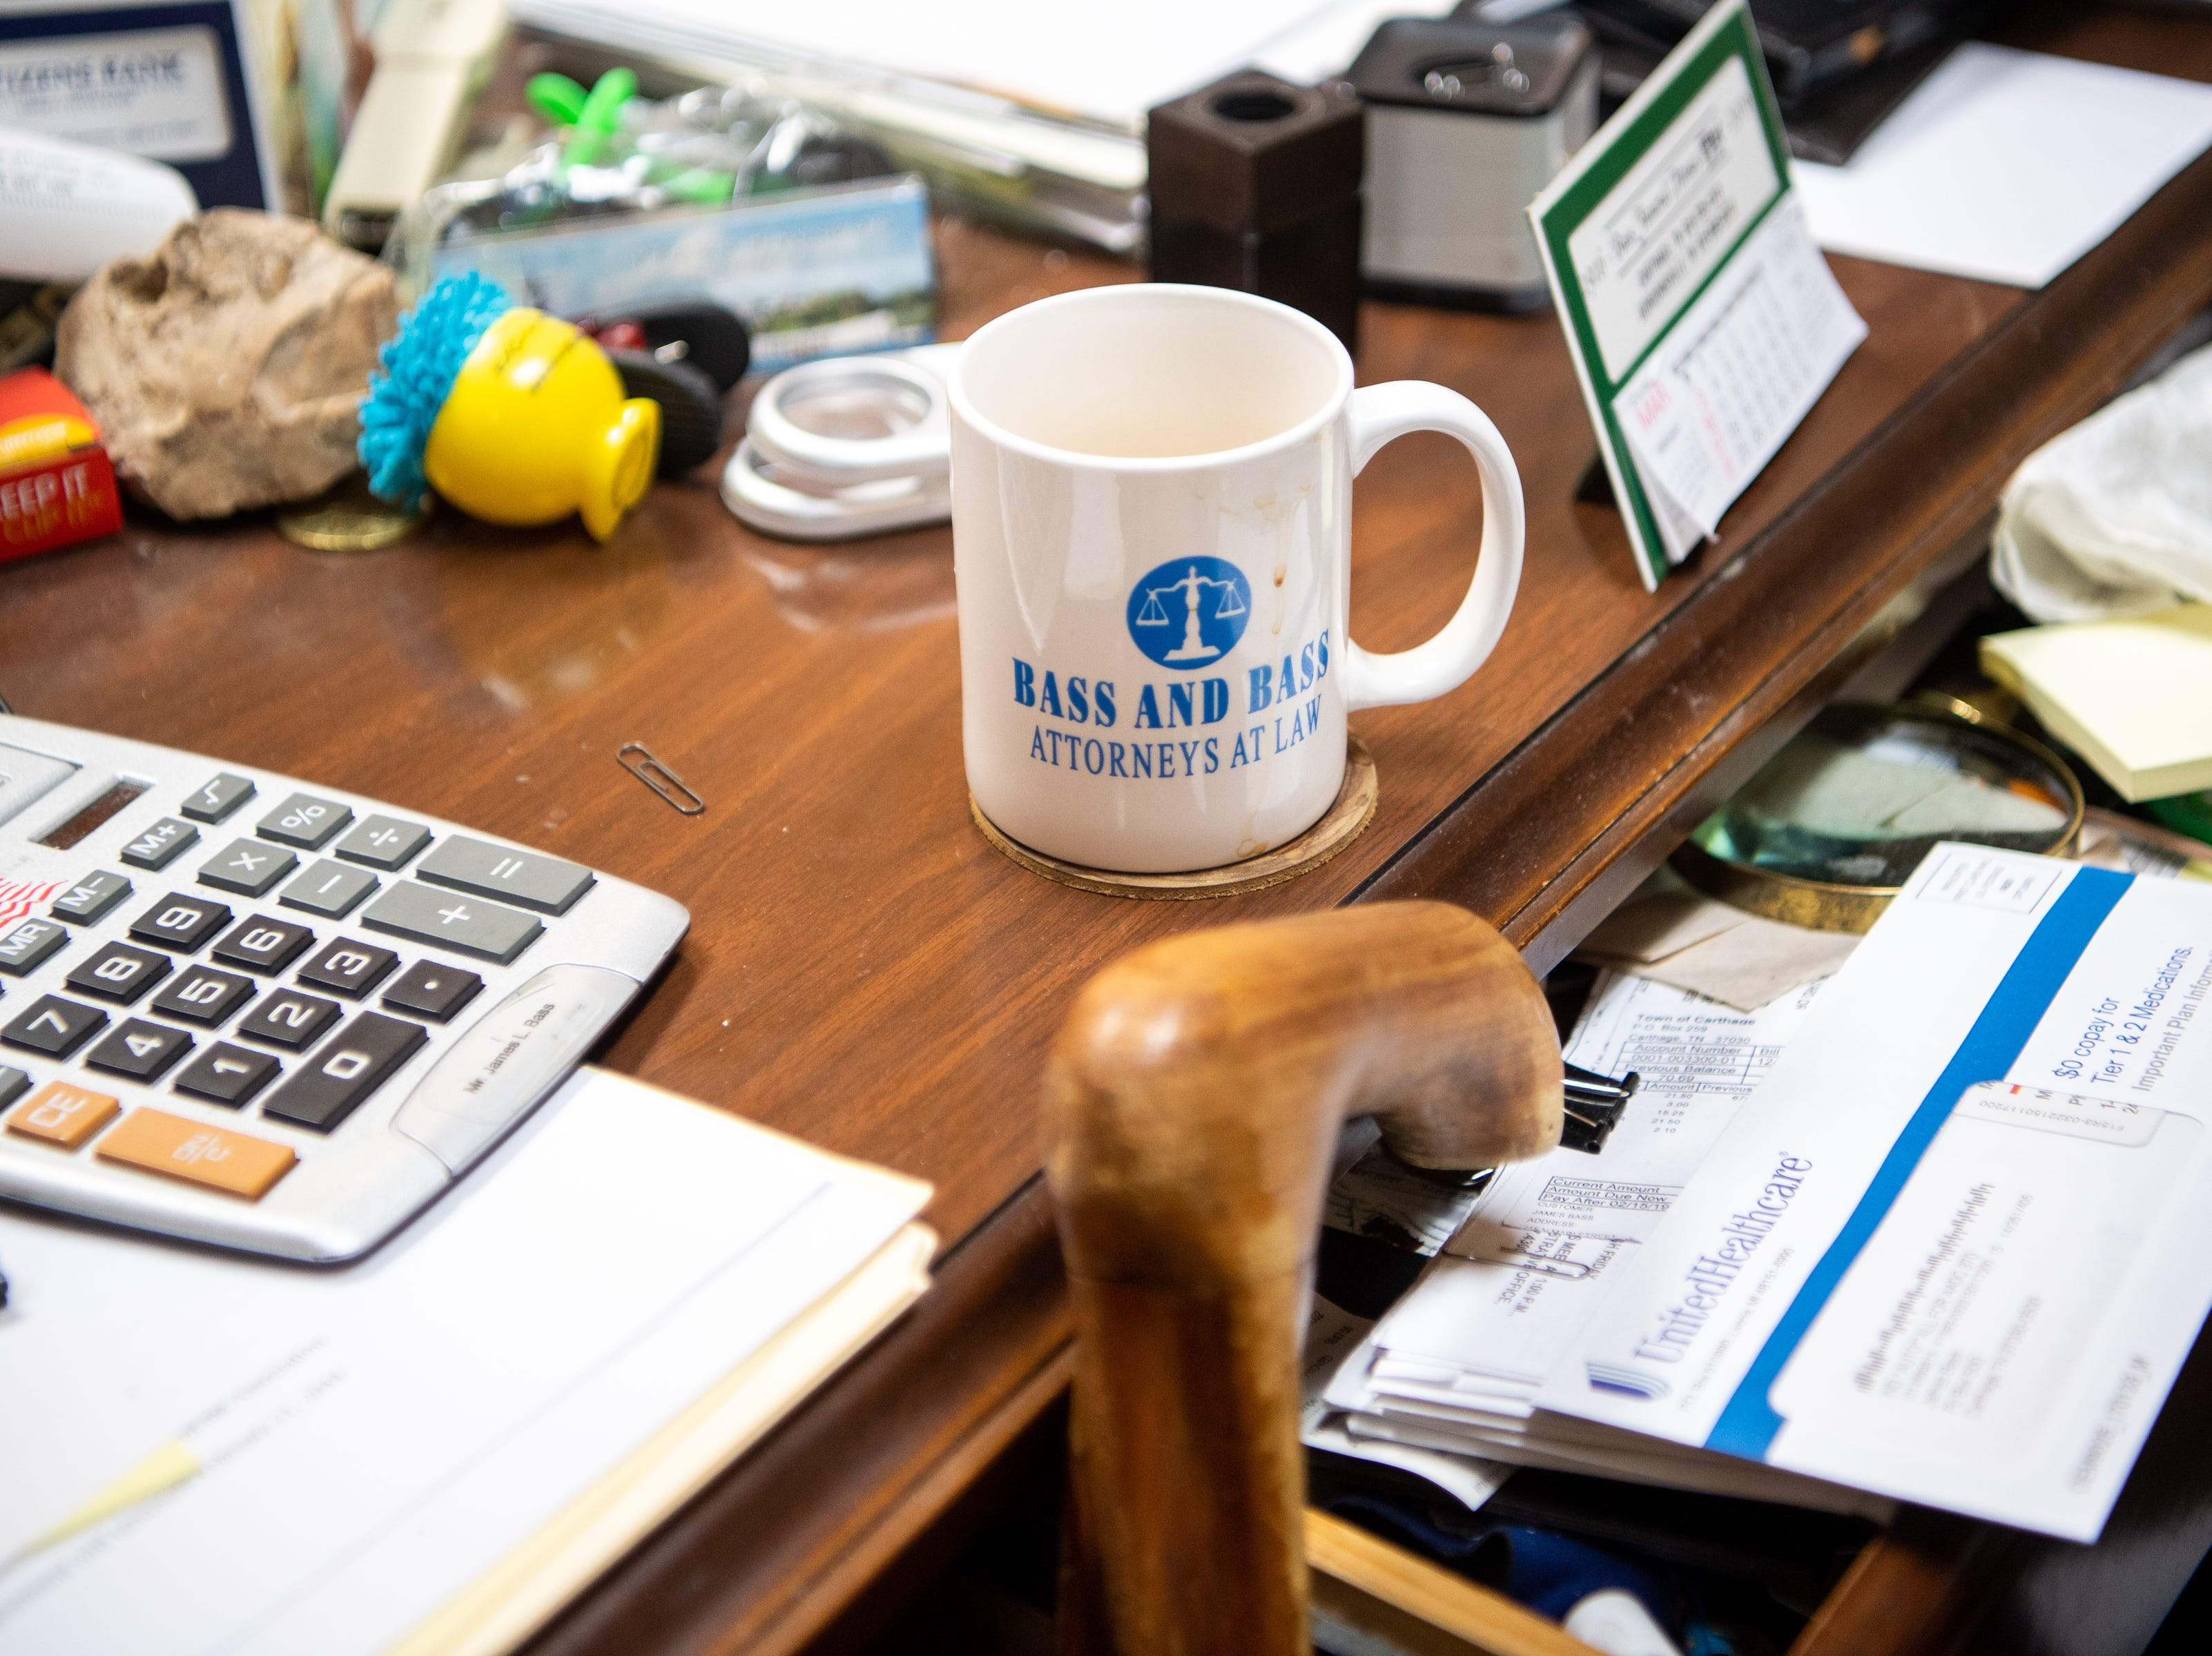 James L. Bass', 97, coffee cup remains on his desk as he drinks one cup each morning at Bass & Bass Attorneys At Law Friday, March 29, 2019, in Carthage, Tenn. Bass still works five days a week at the family law firm after starting there 70 years ago. Bass served in World War II, went back to school to pursue a law degree and graduated Vanderbilt University School of Law in 1949.